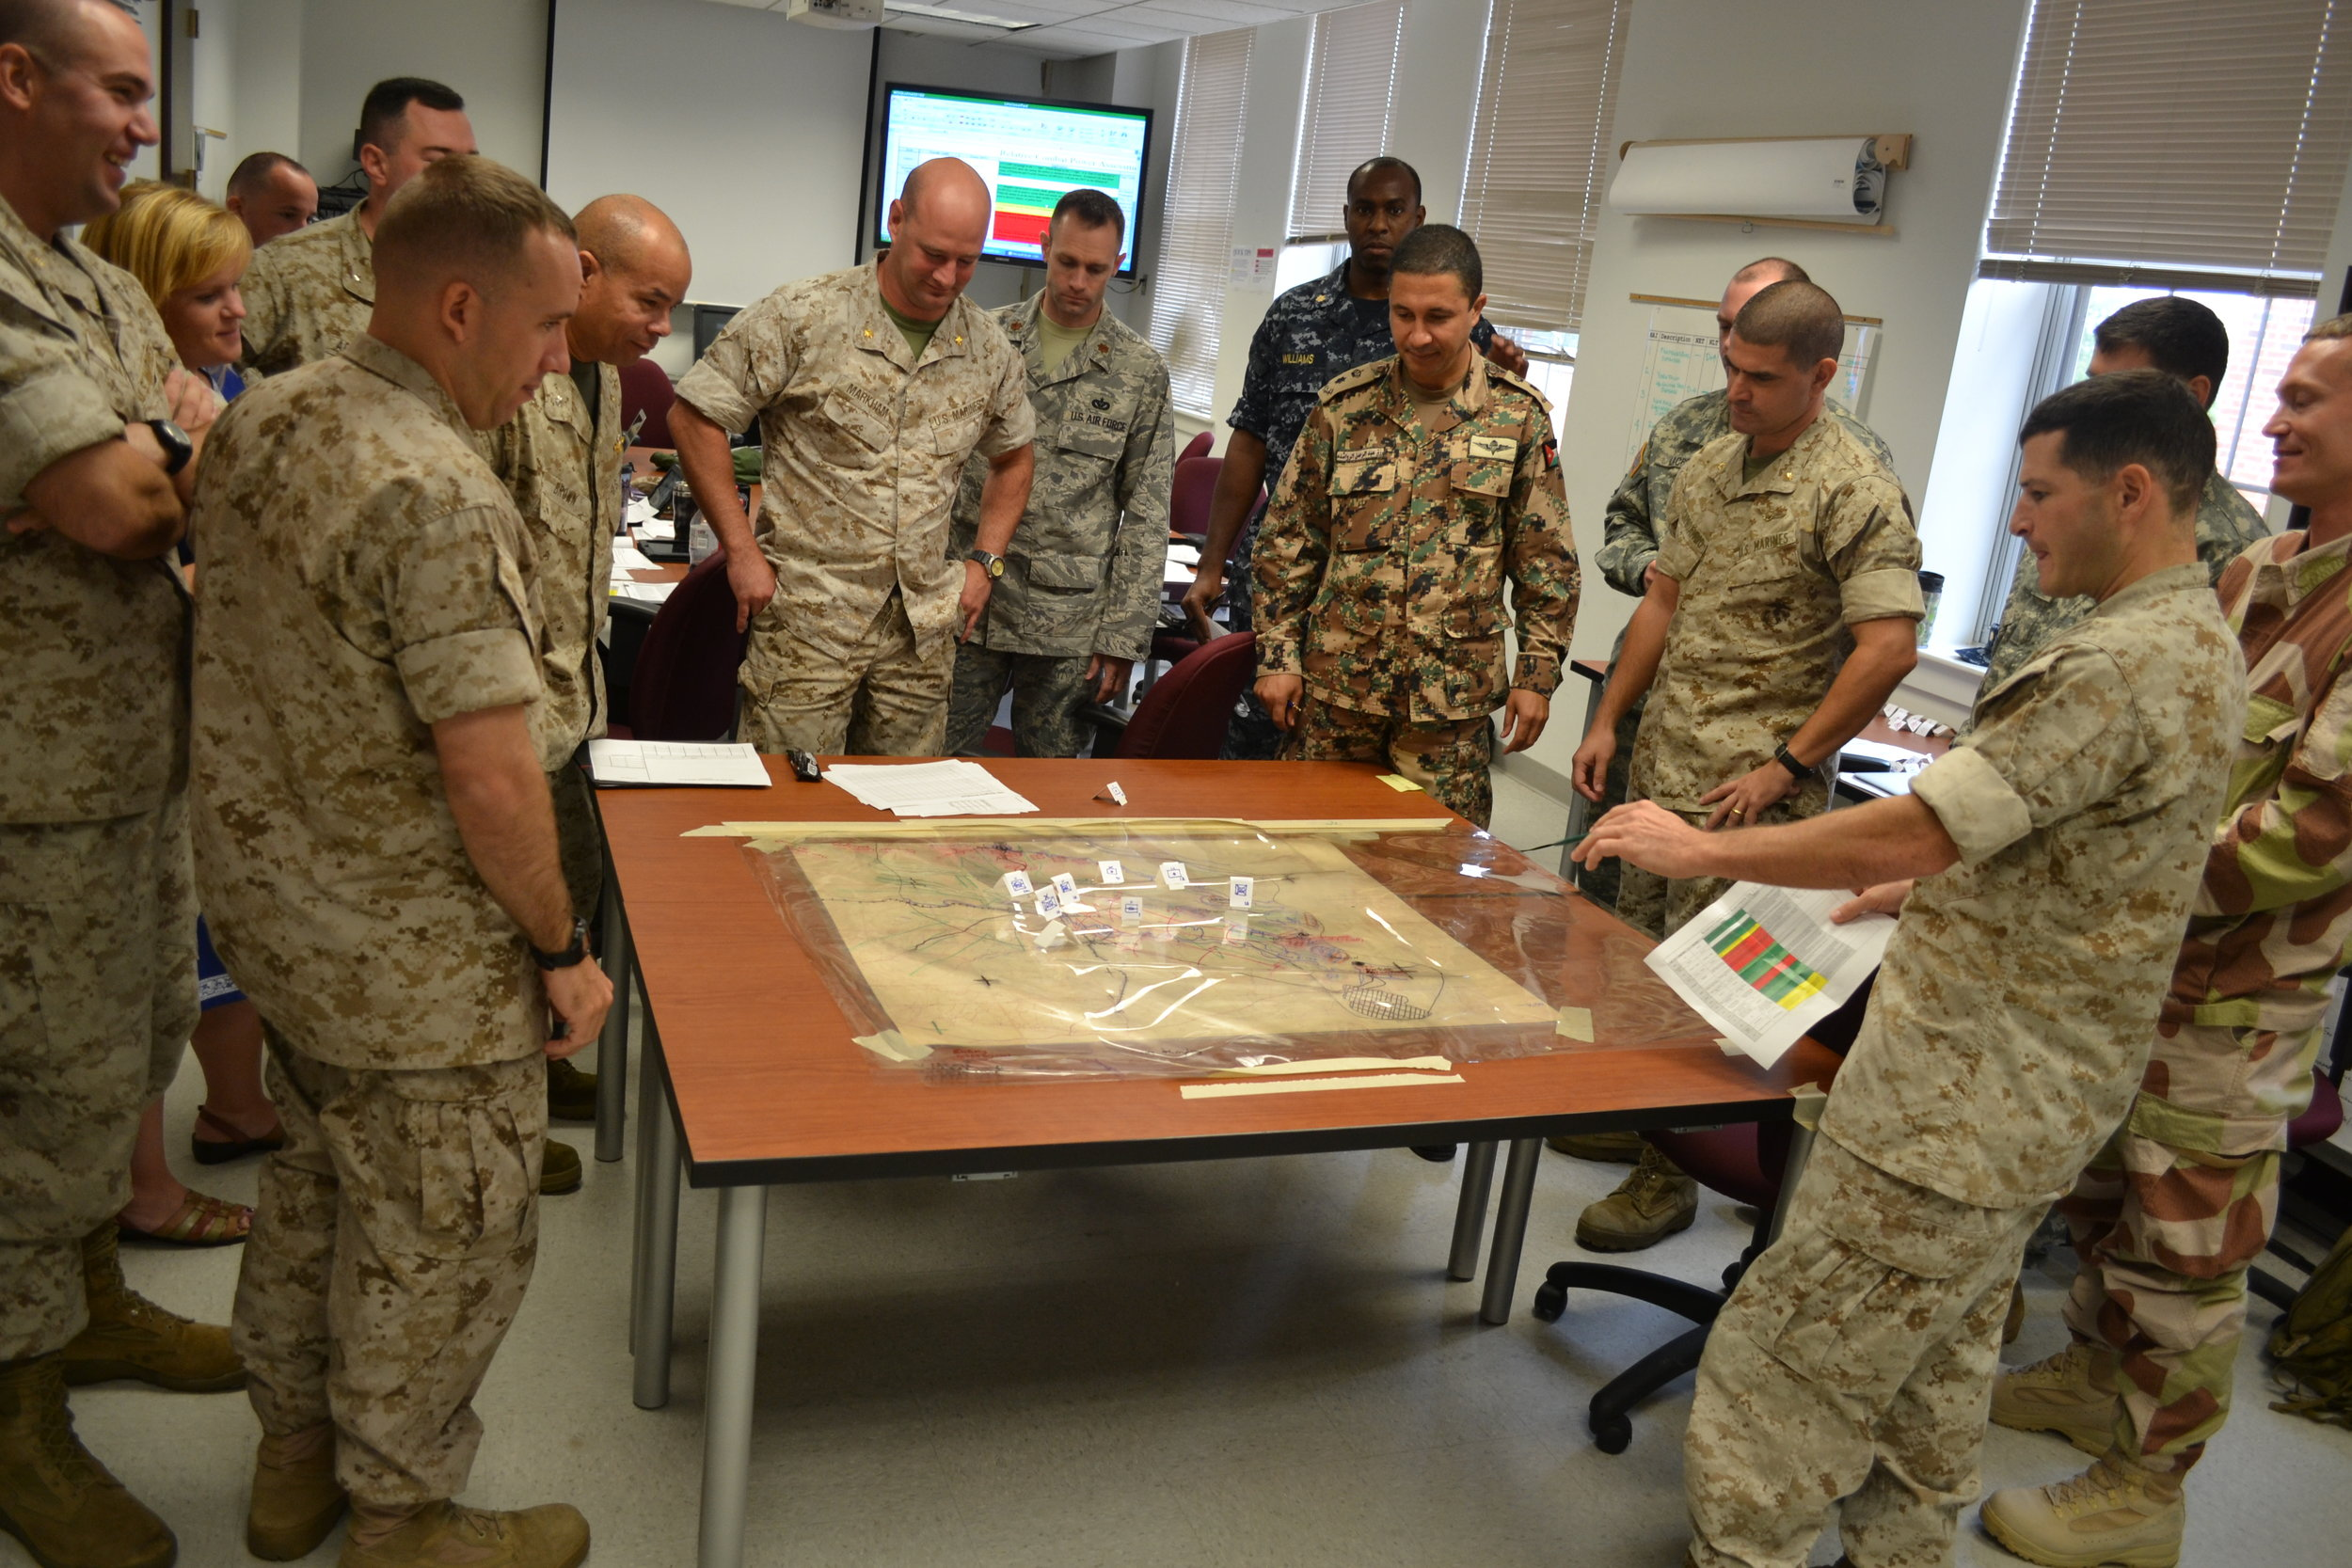 Marine Corps Command and Staff College Utilizes High-Resolution Images from Digitization Projects Group for Officer Training | Lt. Col. Shawn Callahan